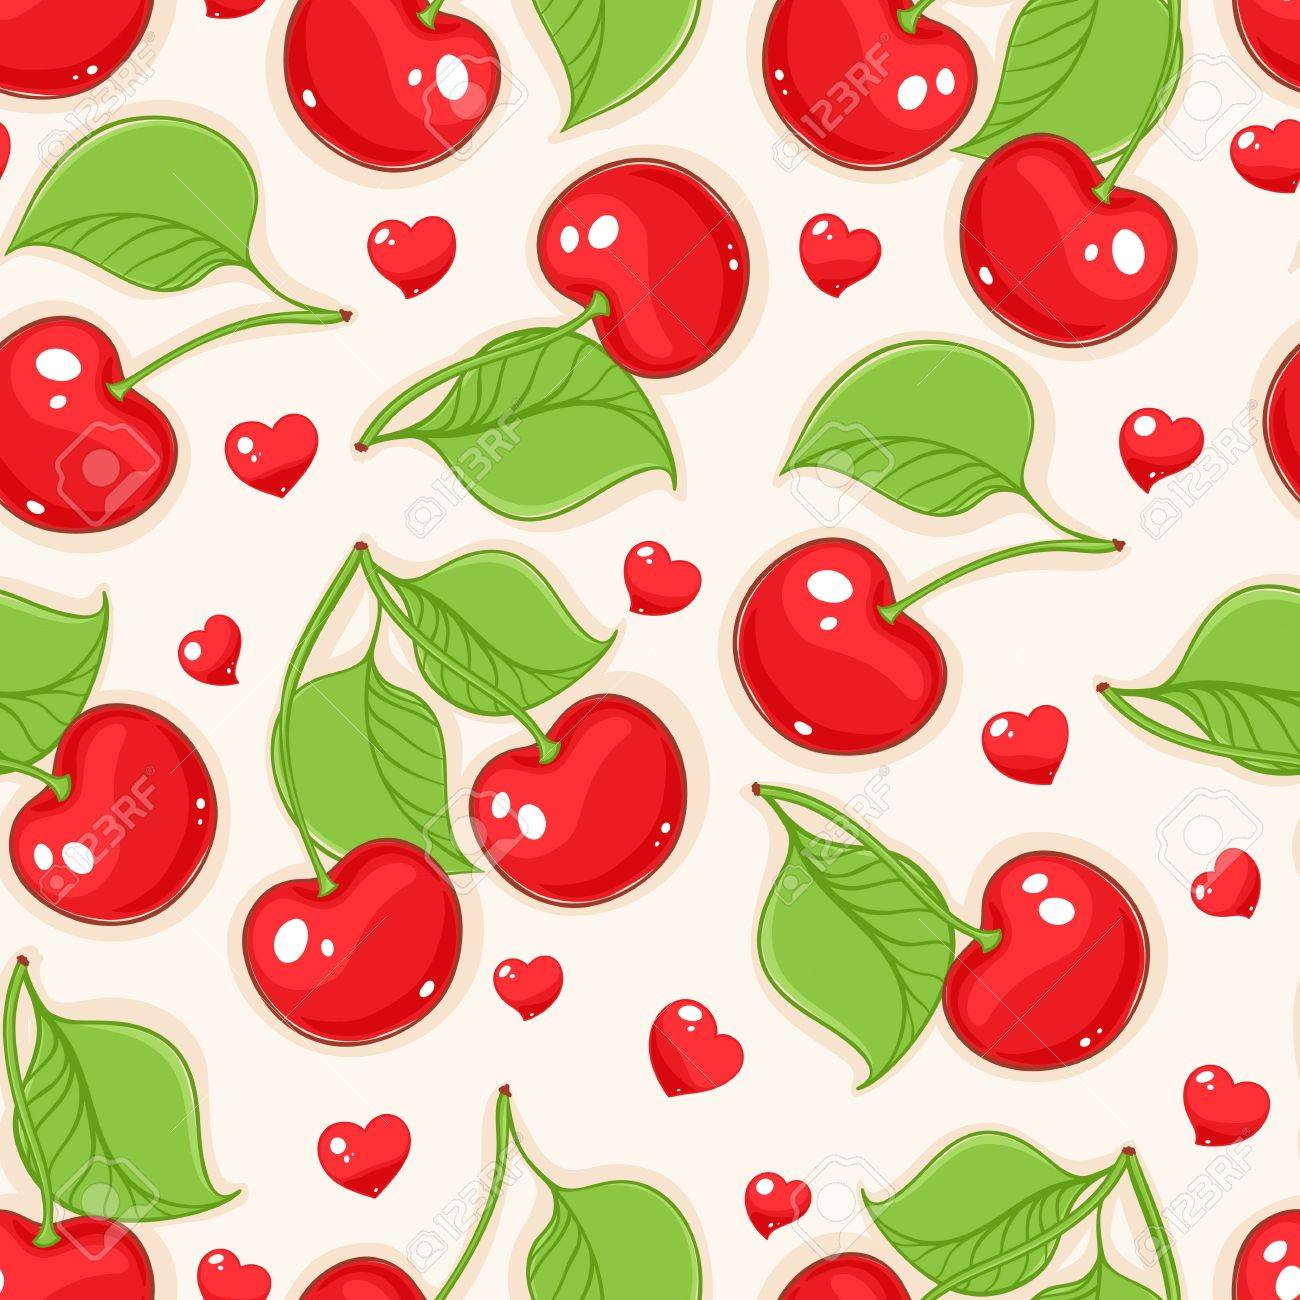 Summer seamless beige background with red cherries and hearts - 19687677